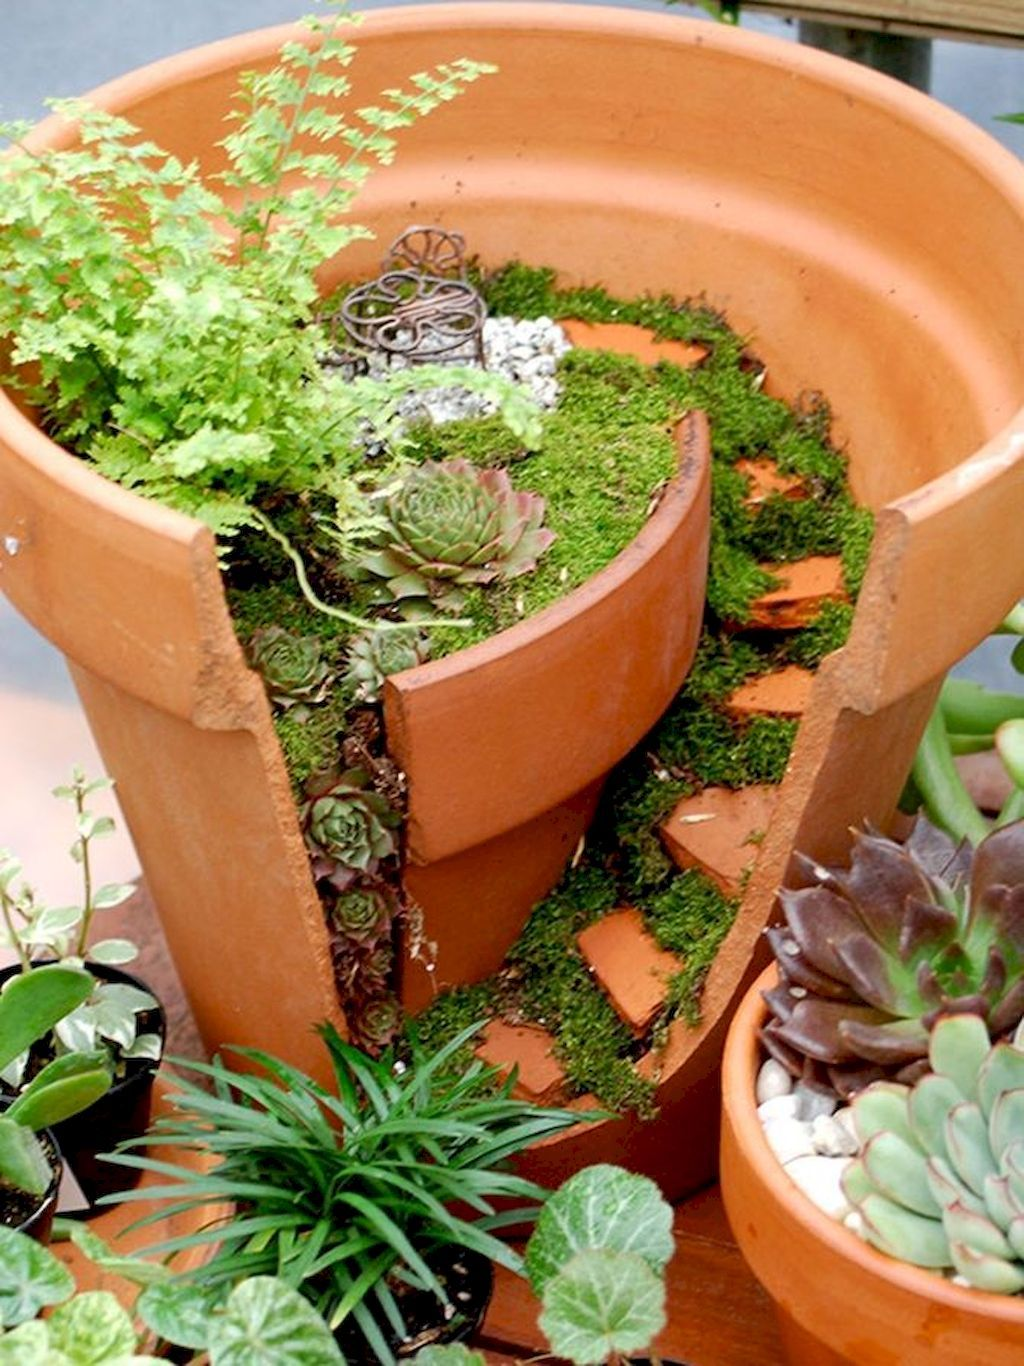 Diy garden ideas pinterest  Adorable  Fabulous DIY Fairy Garden Ideas besideroom